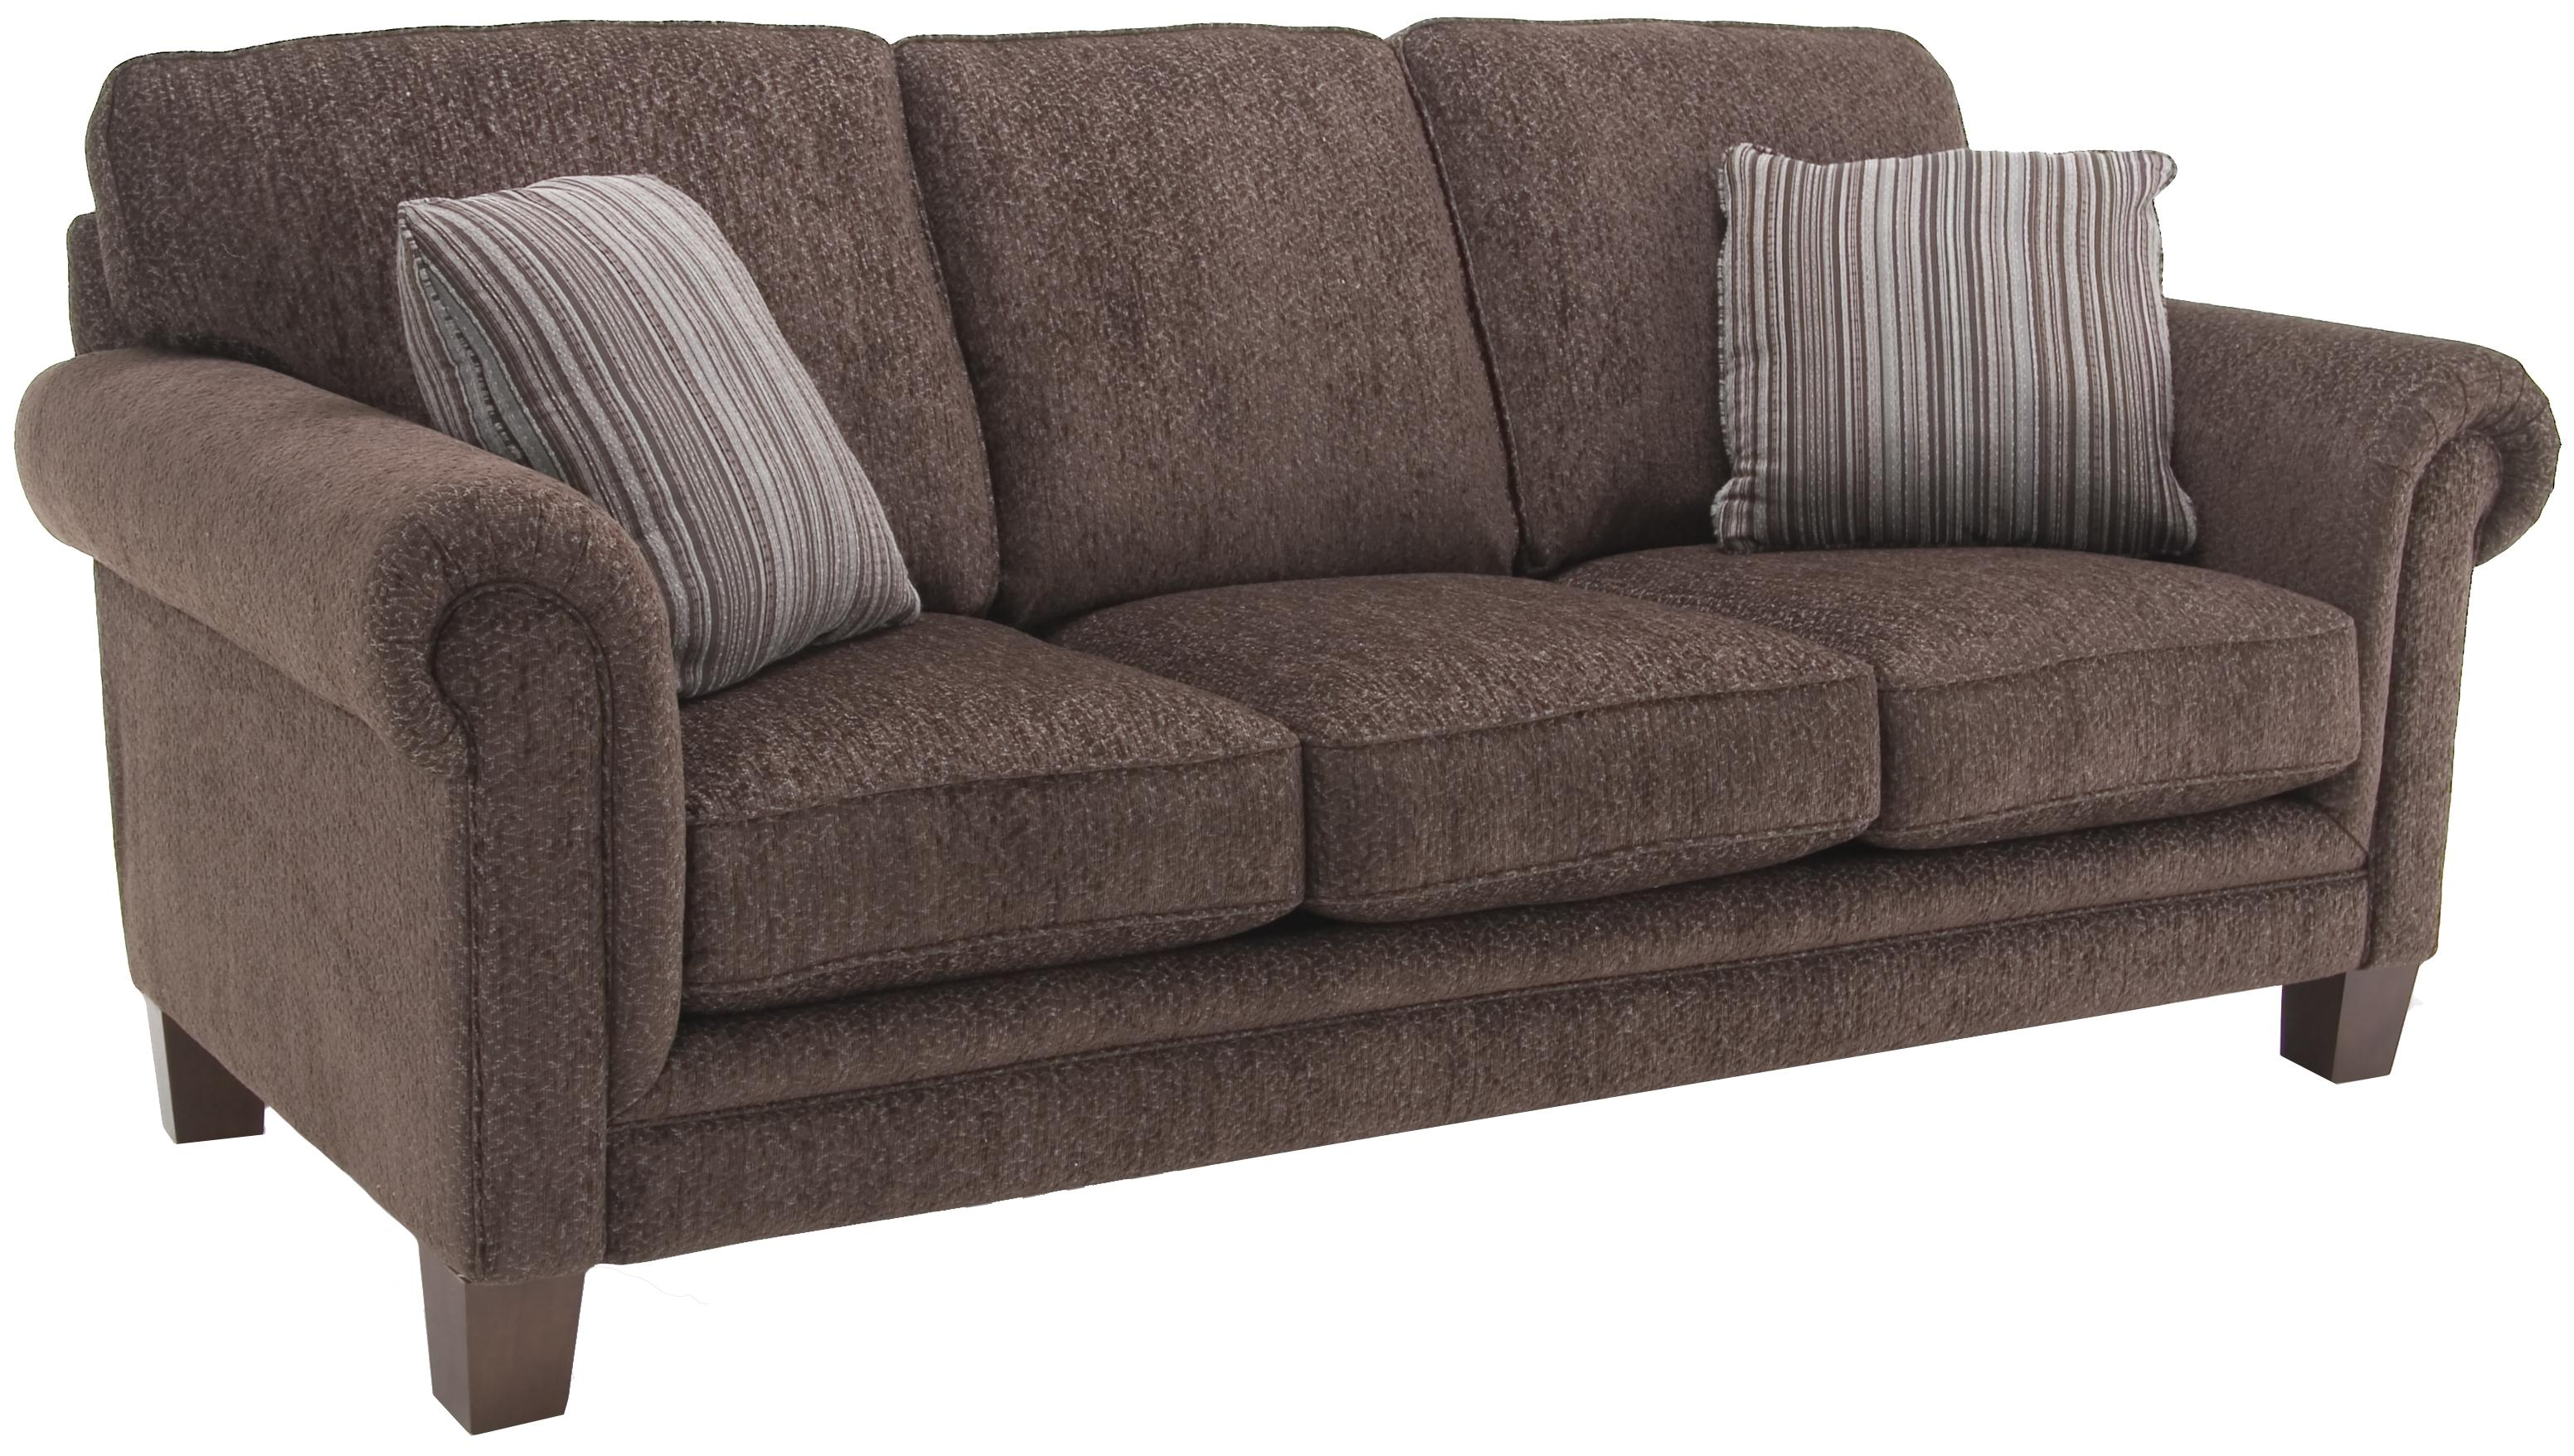 2179 Sofa by Decor-Rest at Reid's Furniture